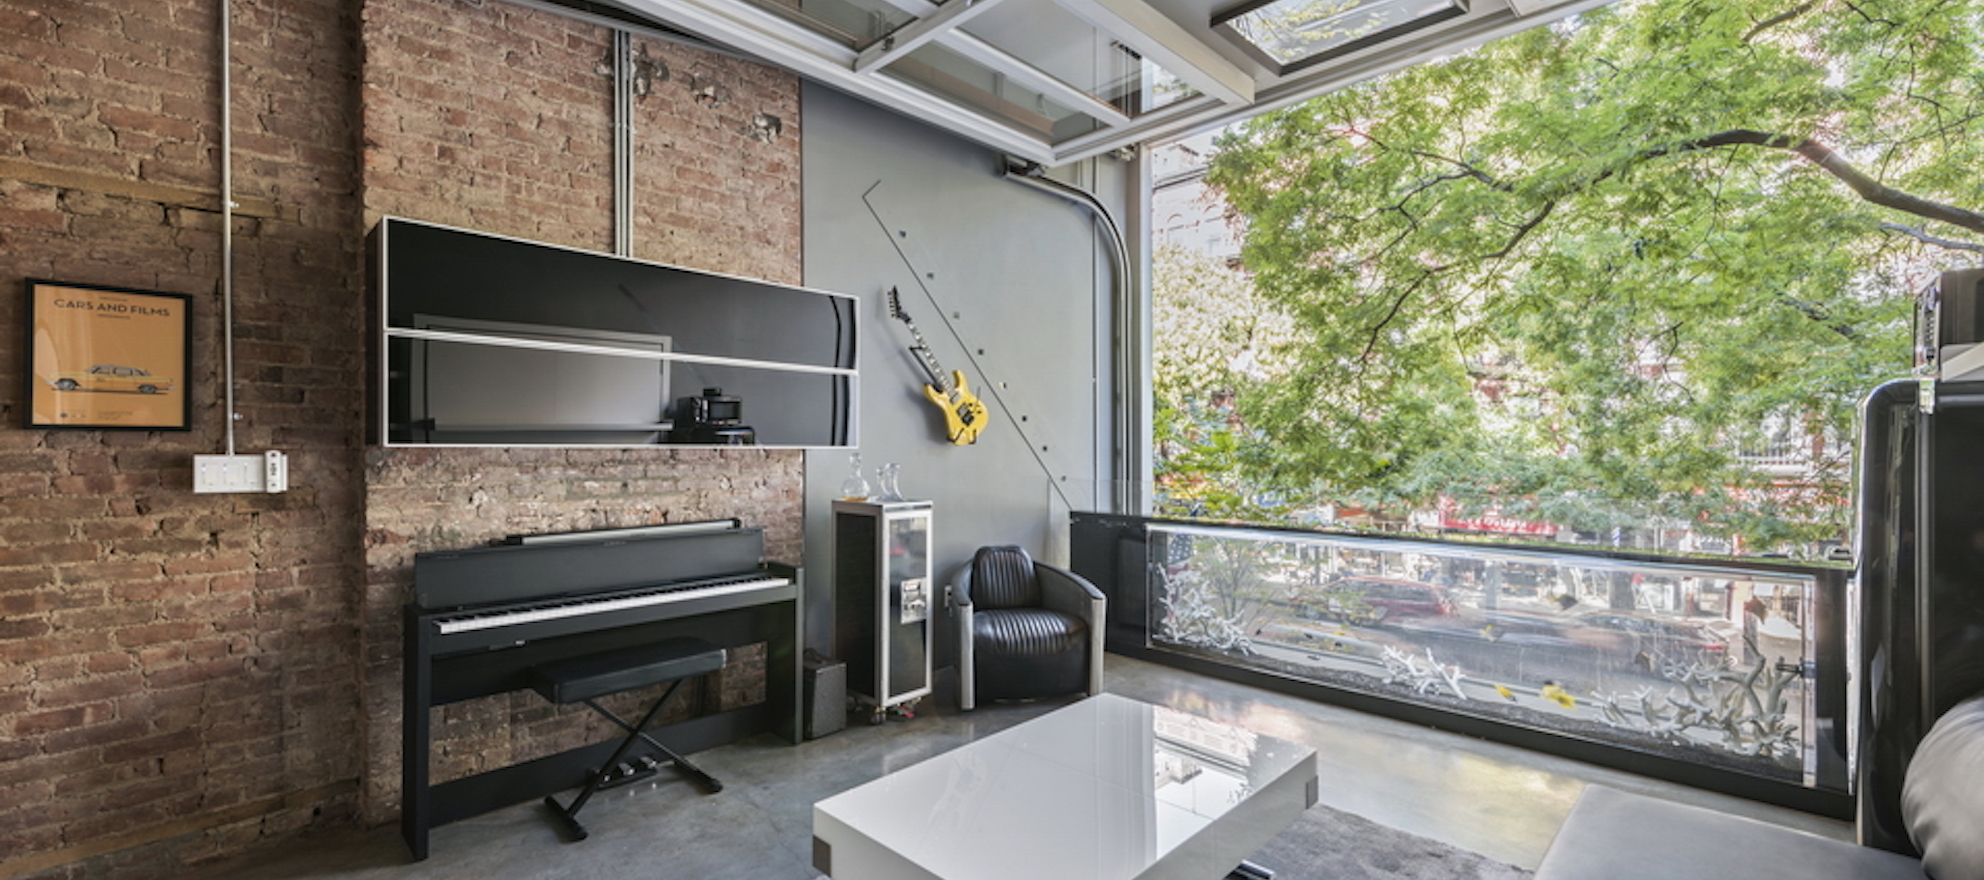 Perfect Check Out This East Village Triplex With Retractable Walls